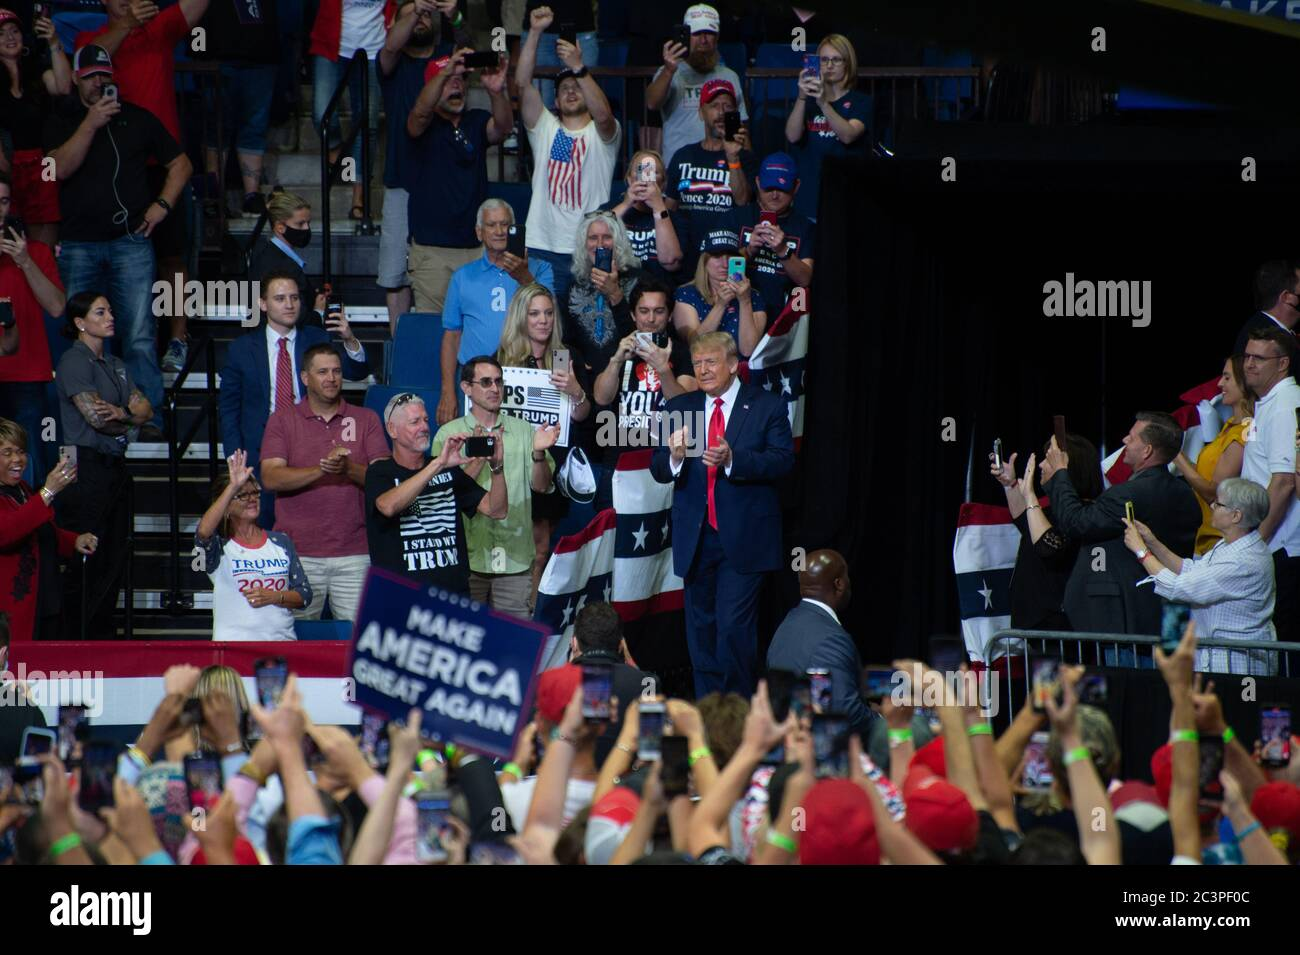 TULSA, Oklahoma, USA.  - June 20, 2020: US President Donald J. Trump holds campaign rally in Bank of Oklahoma Center. Makes his grand enterance to the center as Trump Supporters cheer. Stock Photo